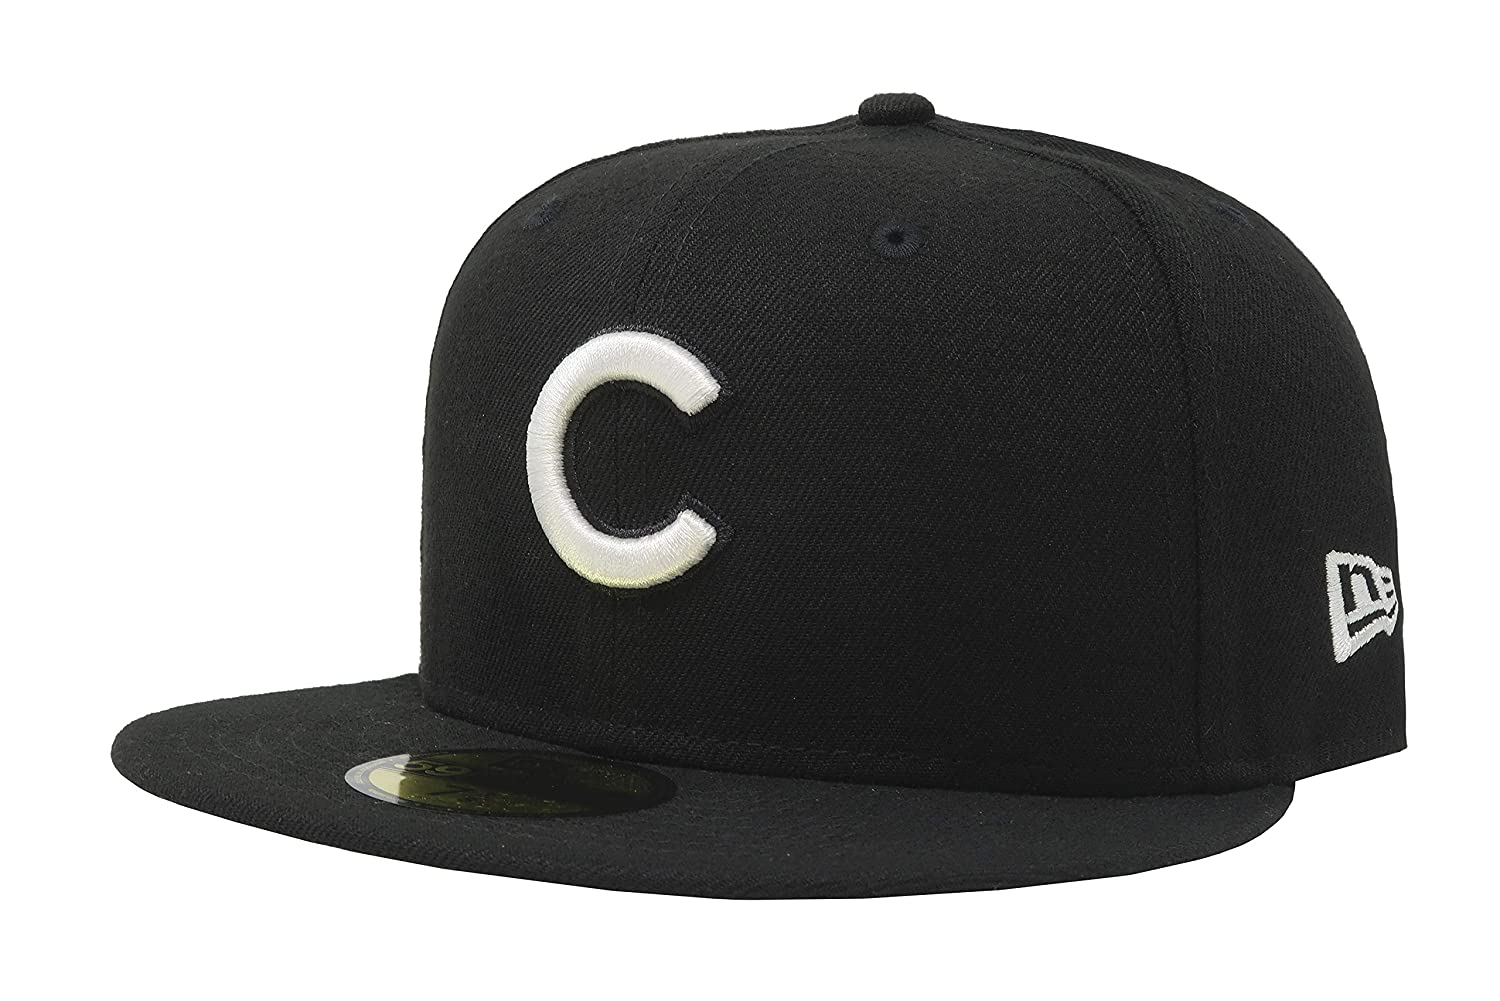 15ac029ea26 Amazon.com  New Era 59Fifty Hat MLB Basic Chicago Cubs Black White Fitted  Baseball Cap  Clothing